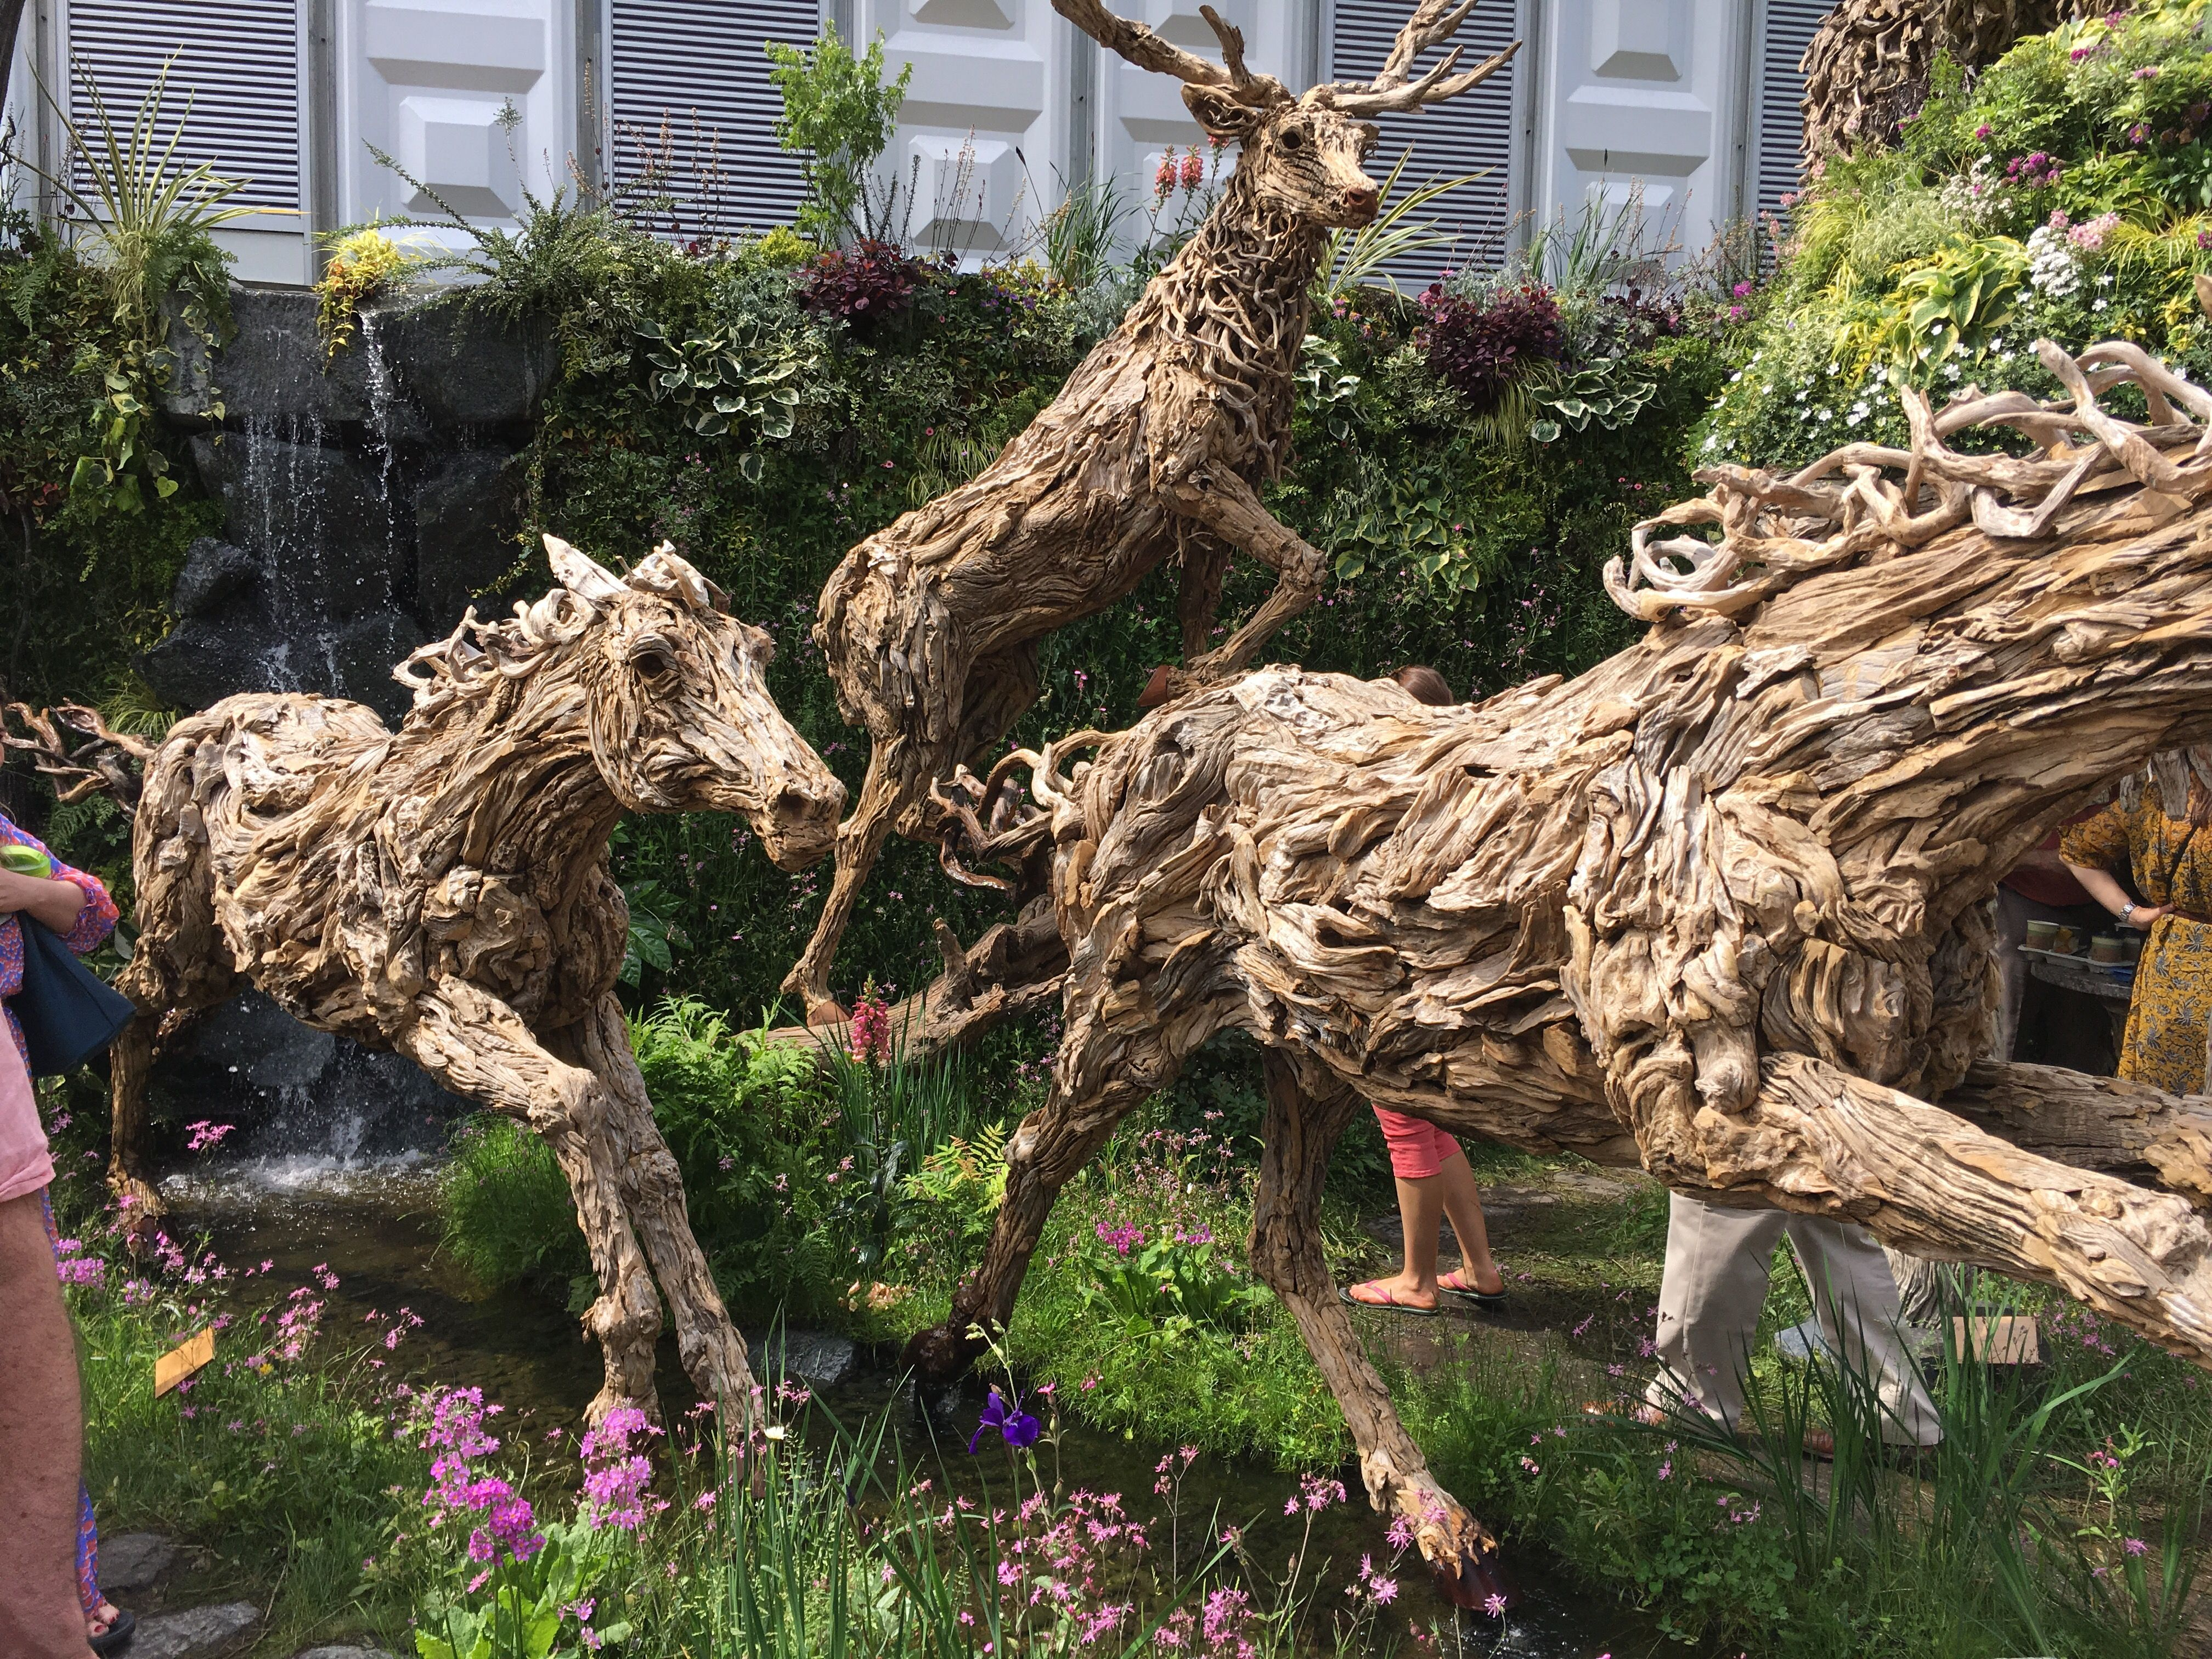 Chelsea flower show 2017 (With images) Flower show 2017